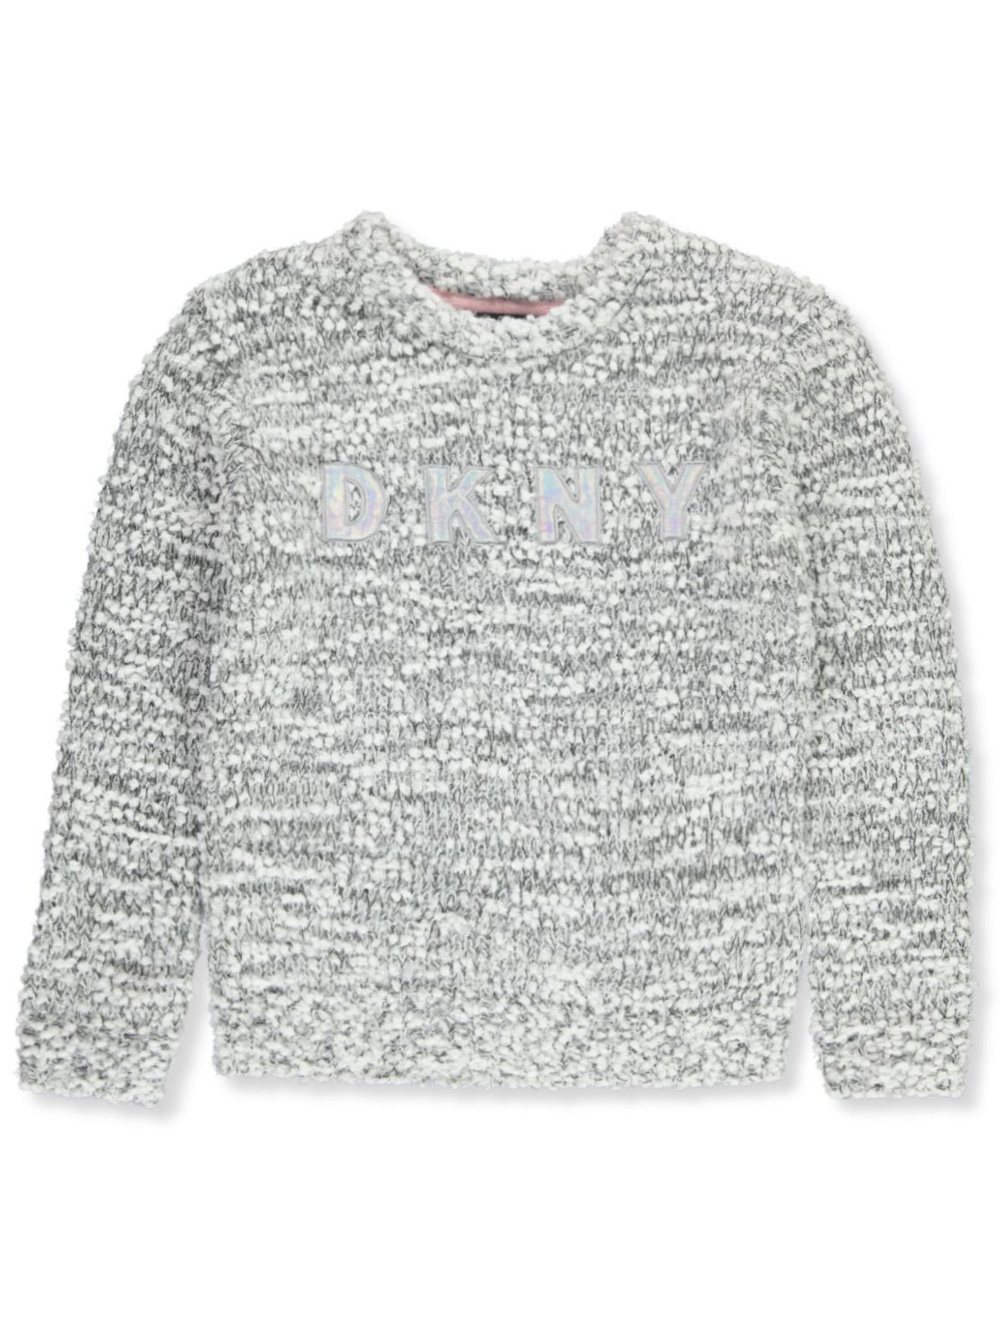 Size 14-16 Sweaters for Girls